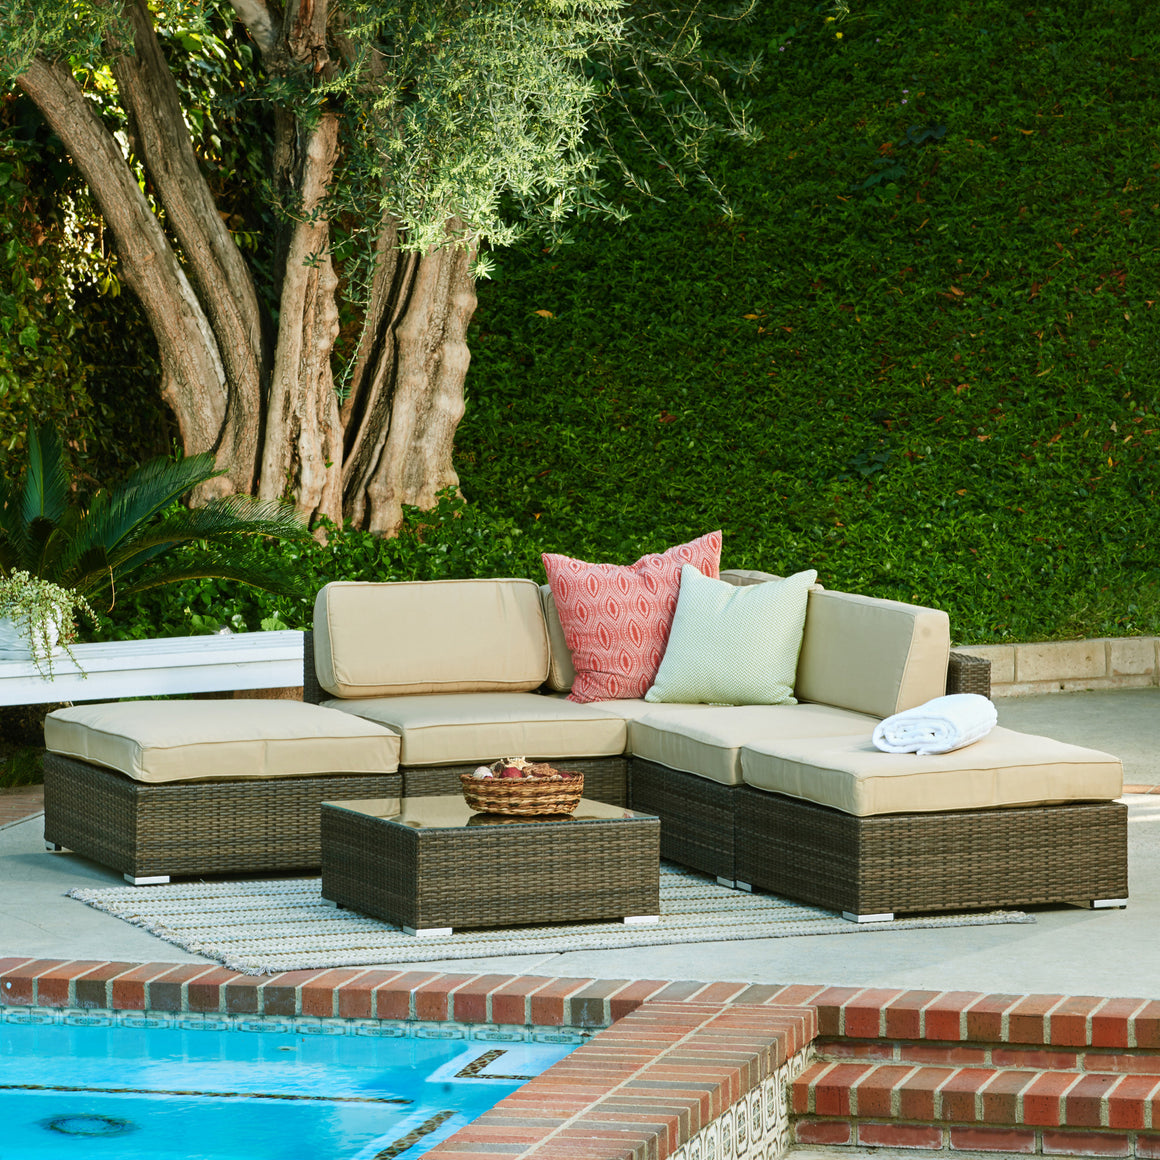 W Unlimited Sophia Collection Outdoor Garden Dark Brown Wicker sectional Sofa set  6PC set w/ Beige Cushions , W Unlimited- grayburd